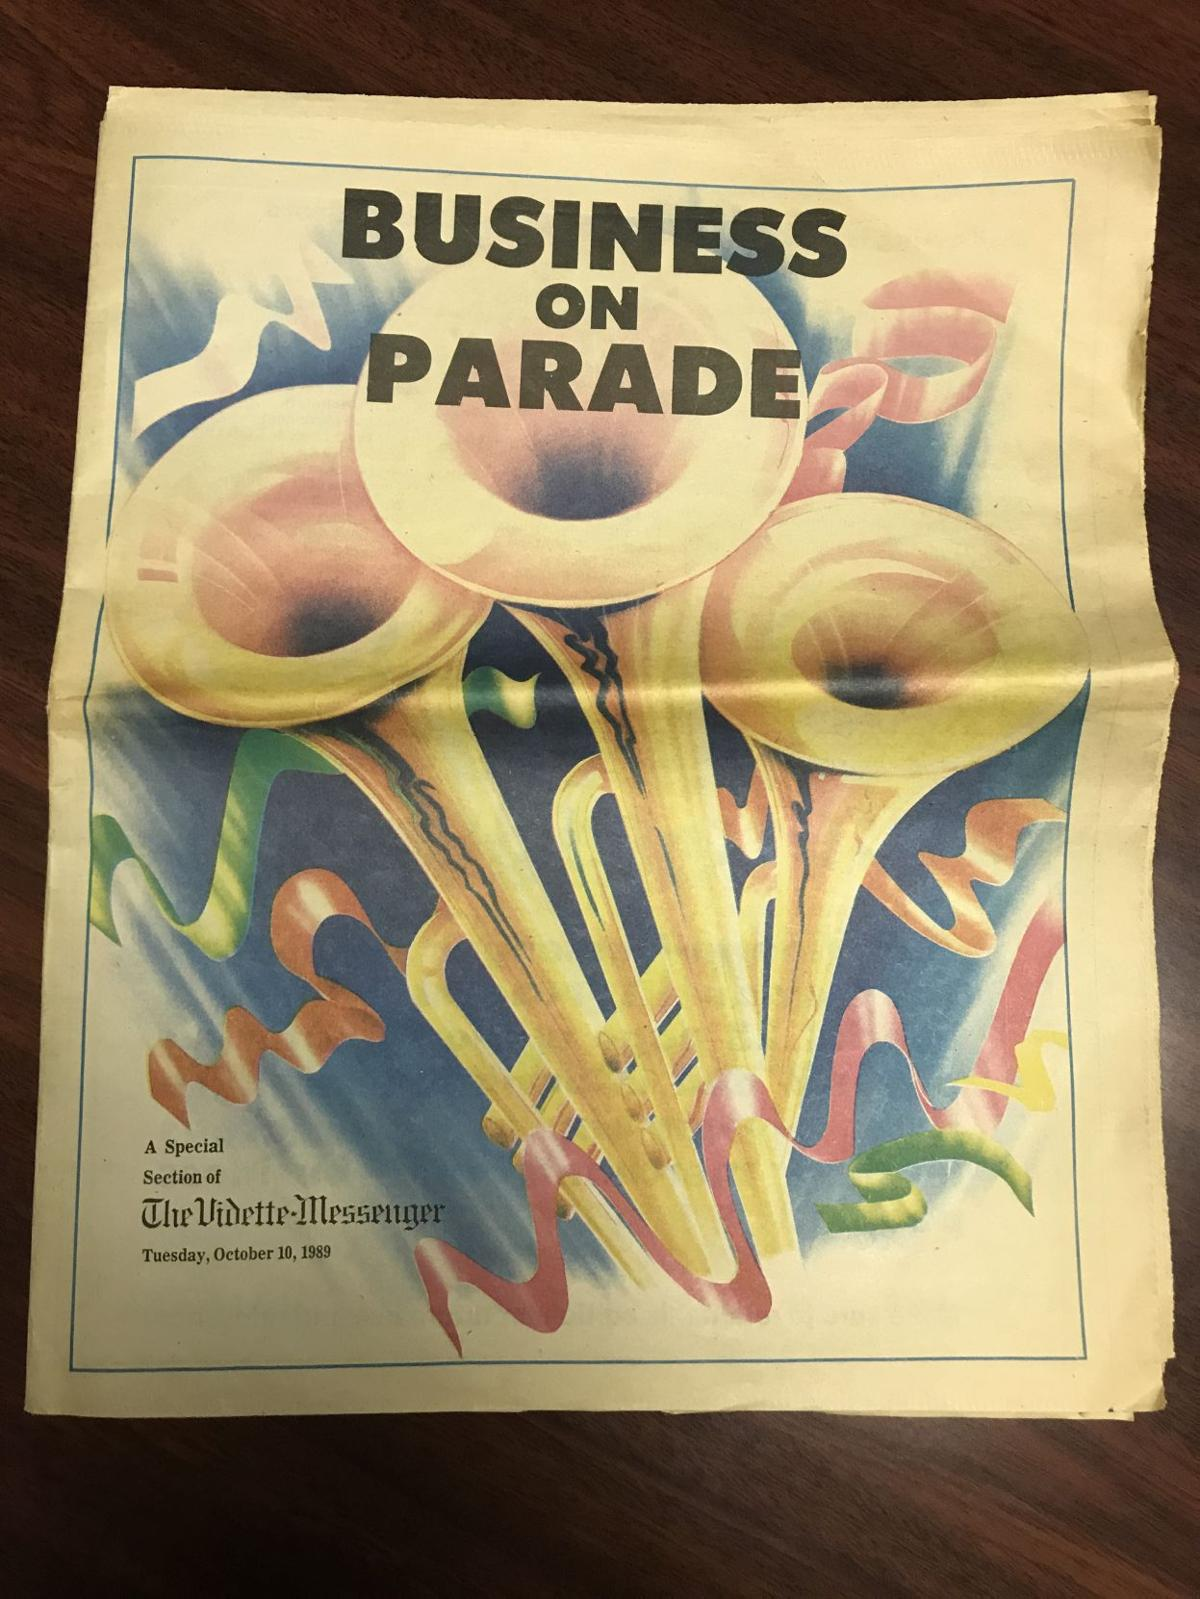 1989 Business on Parade section